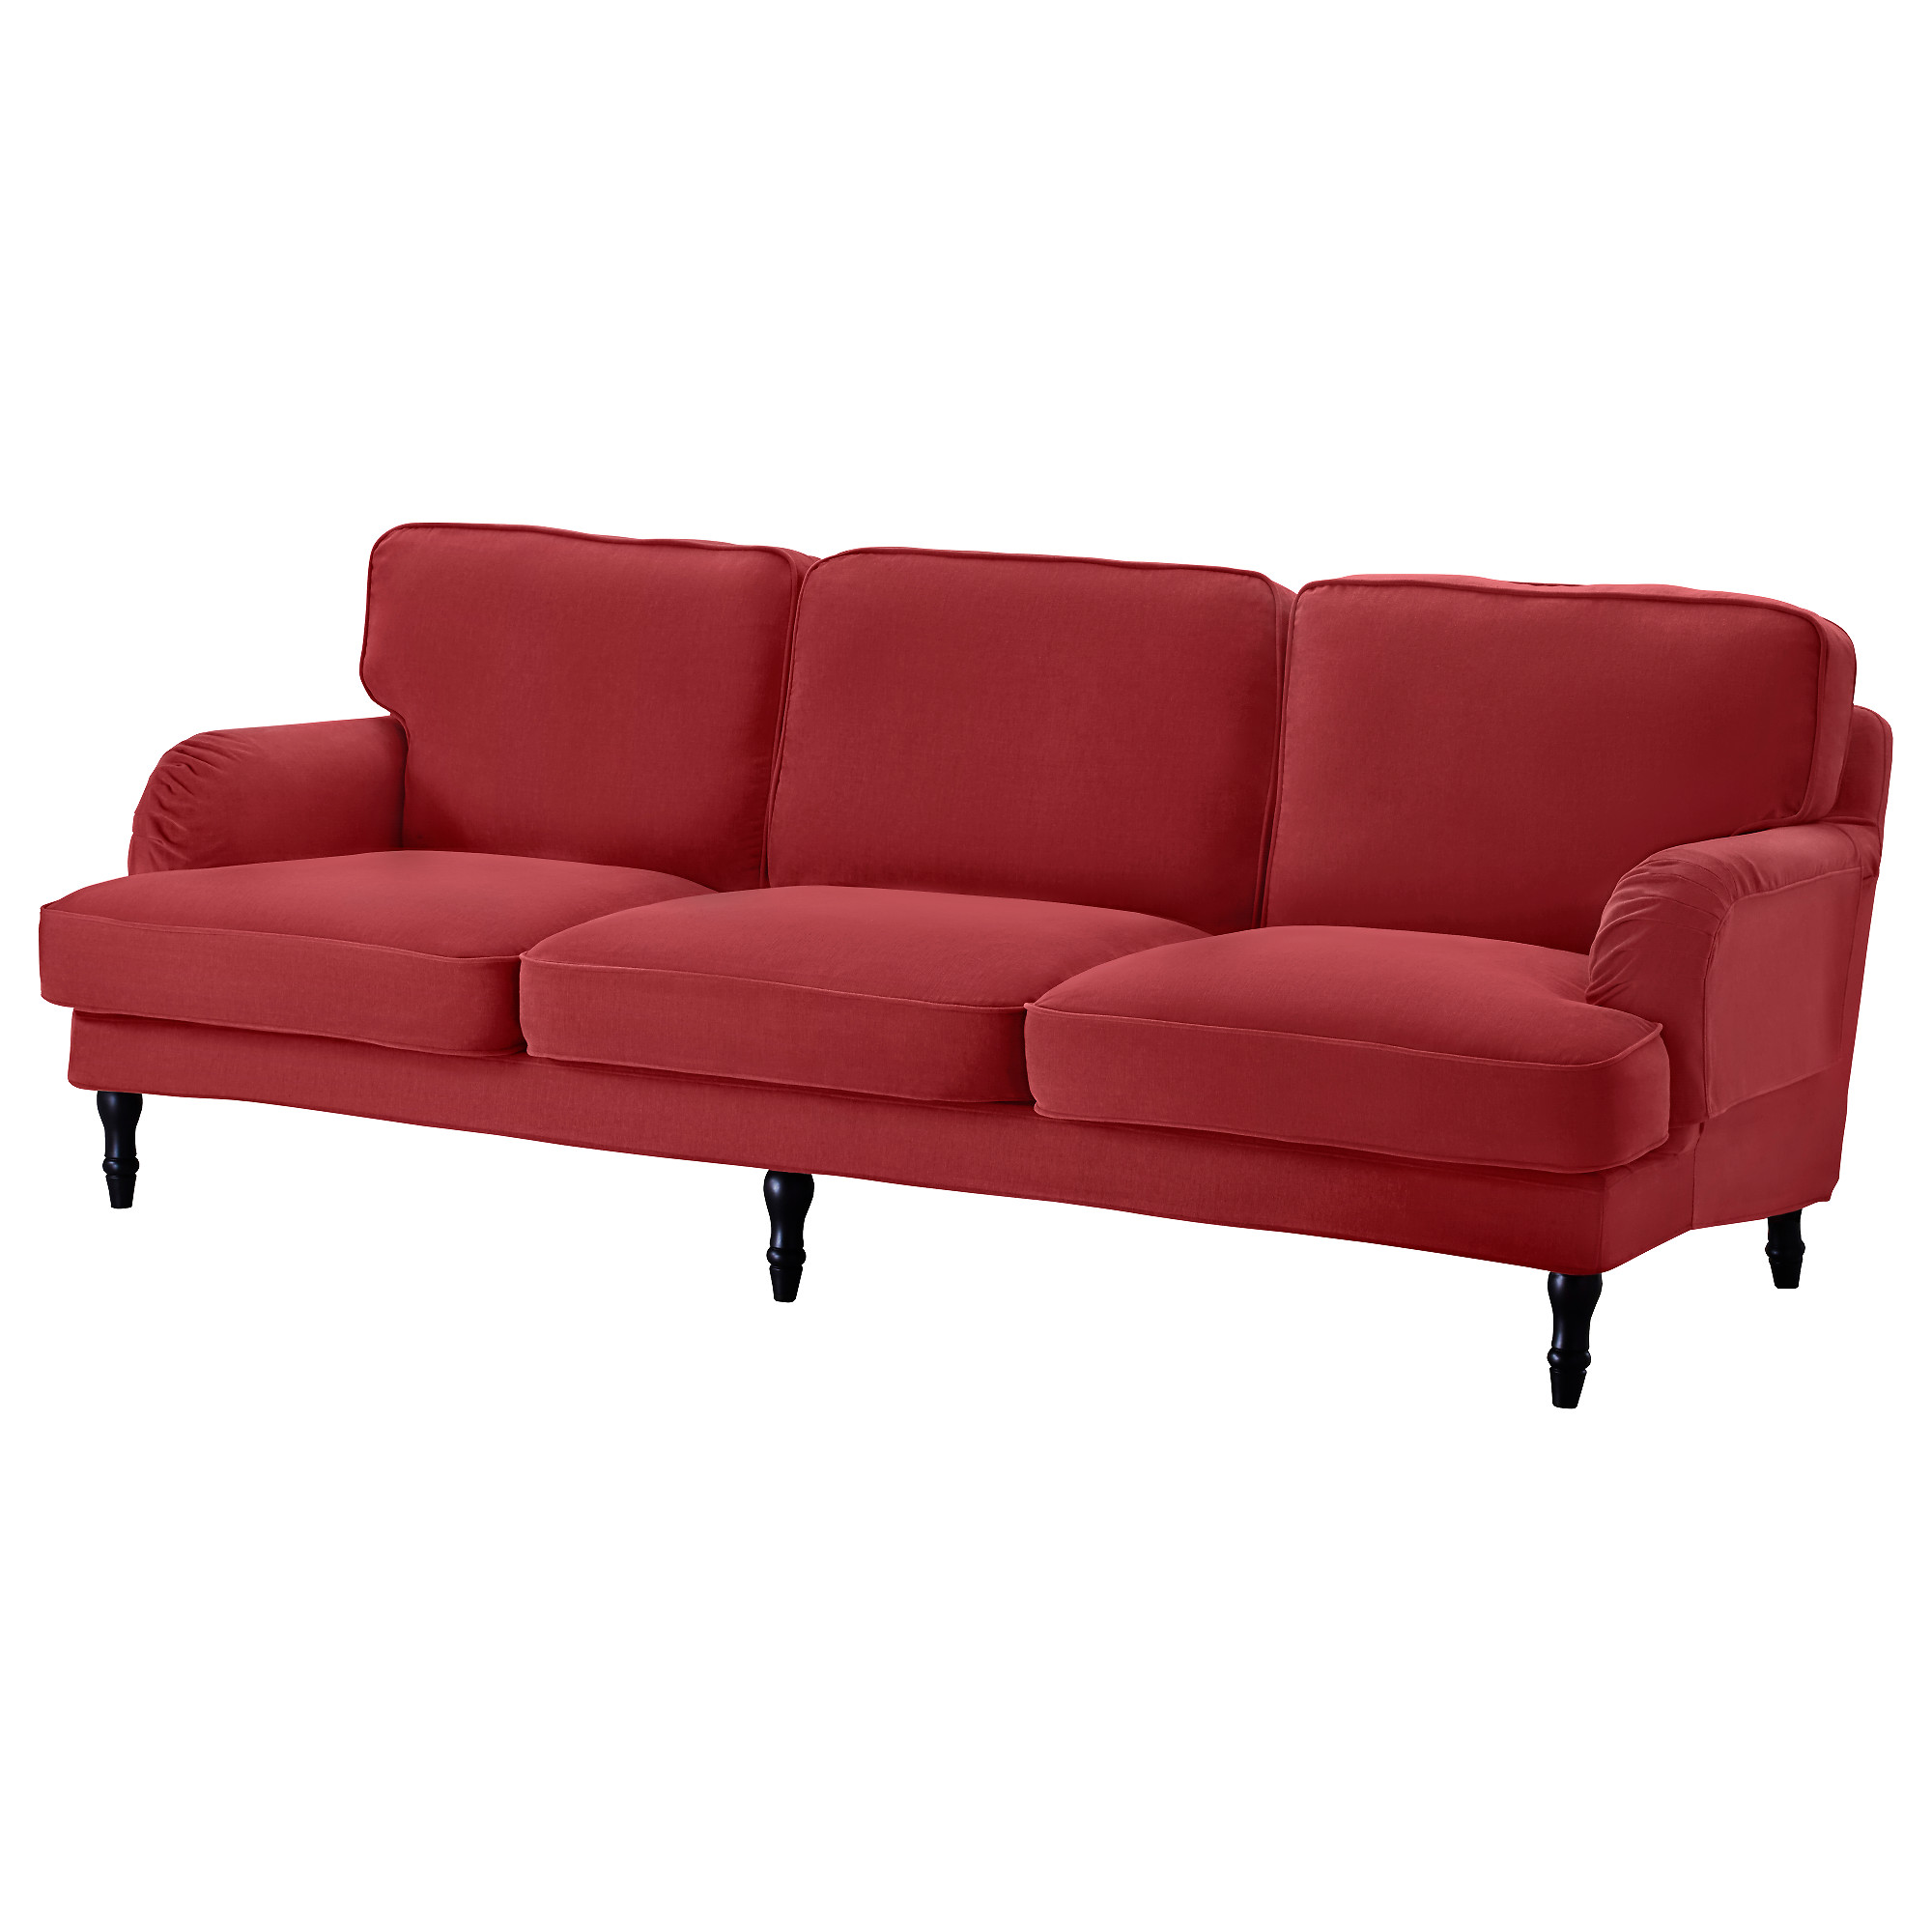 wondrous red sectional sofa covers